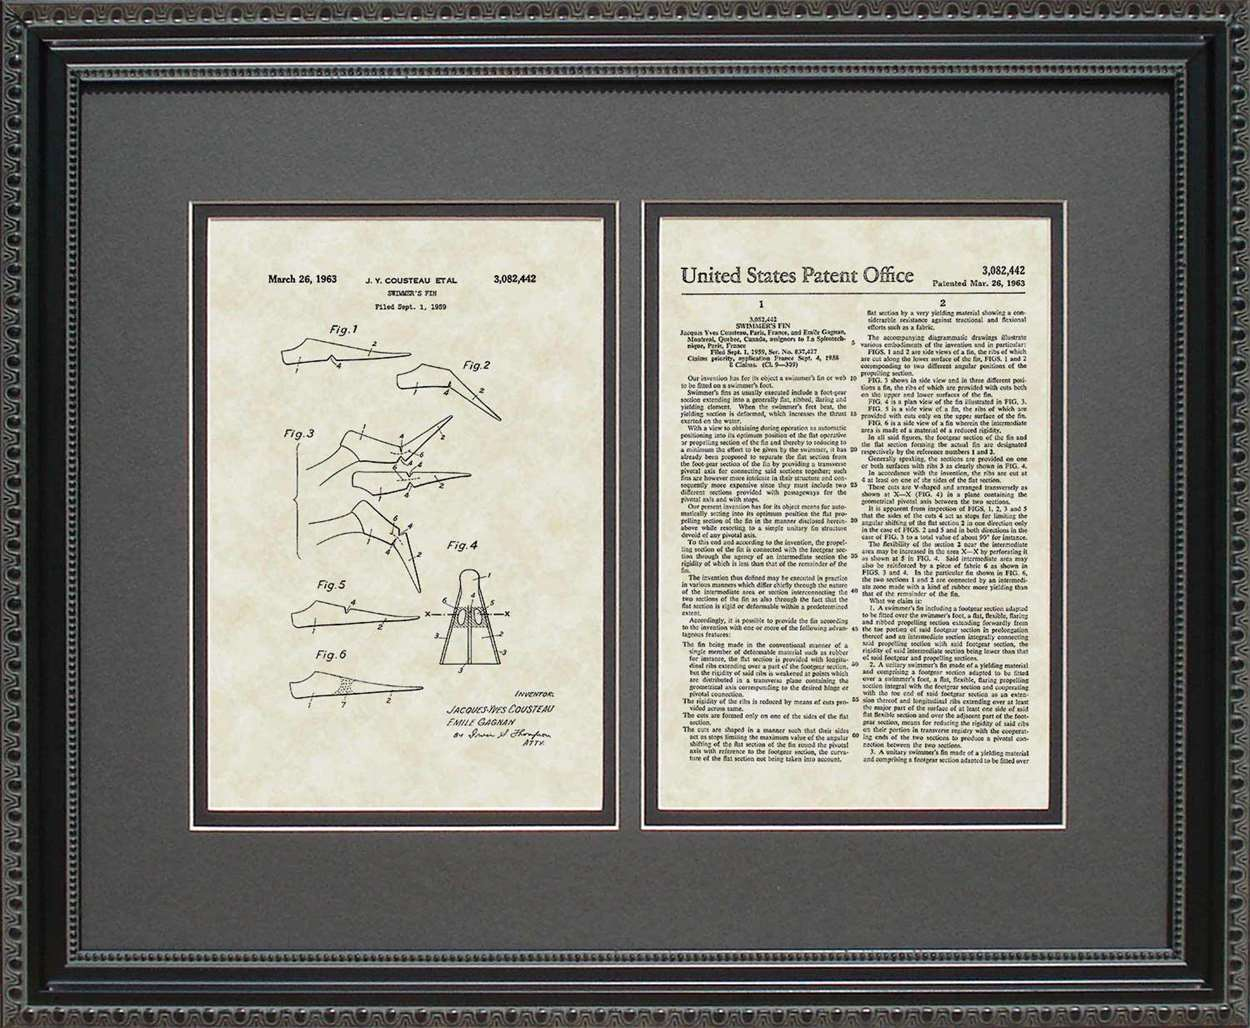 Scuba Diving Fins Patent, Art & Copy, Cousteau, 1959, 16x20